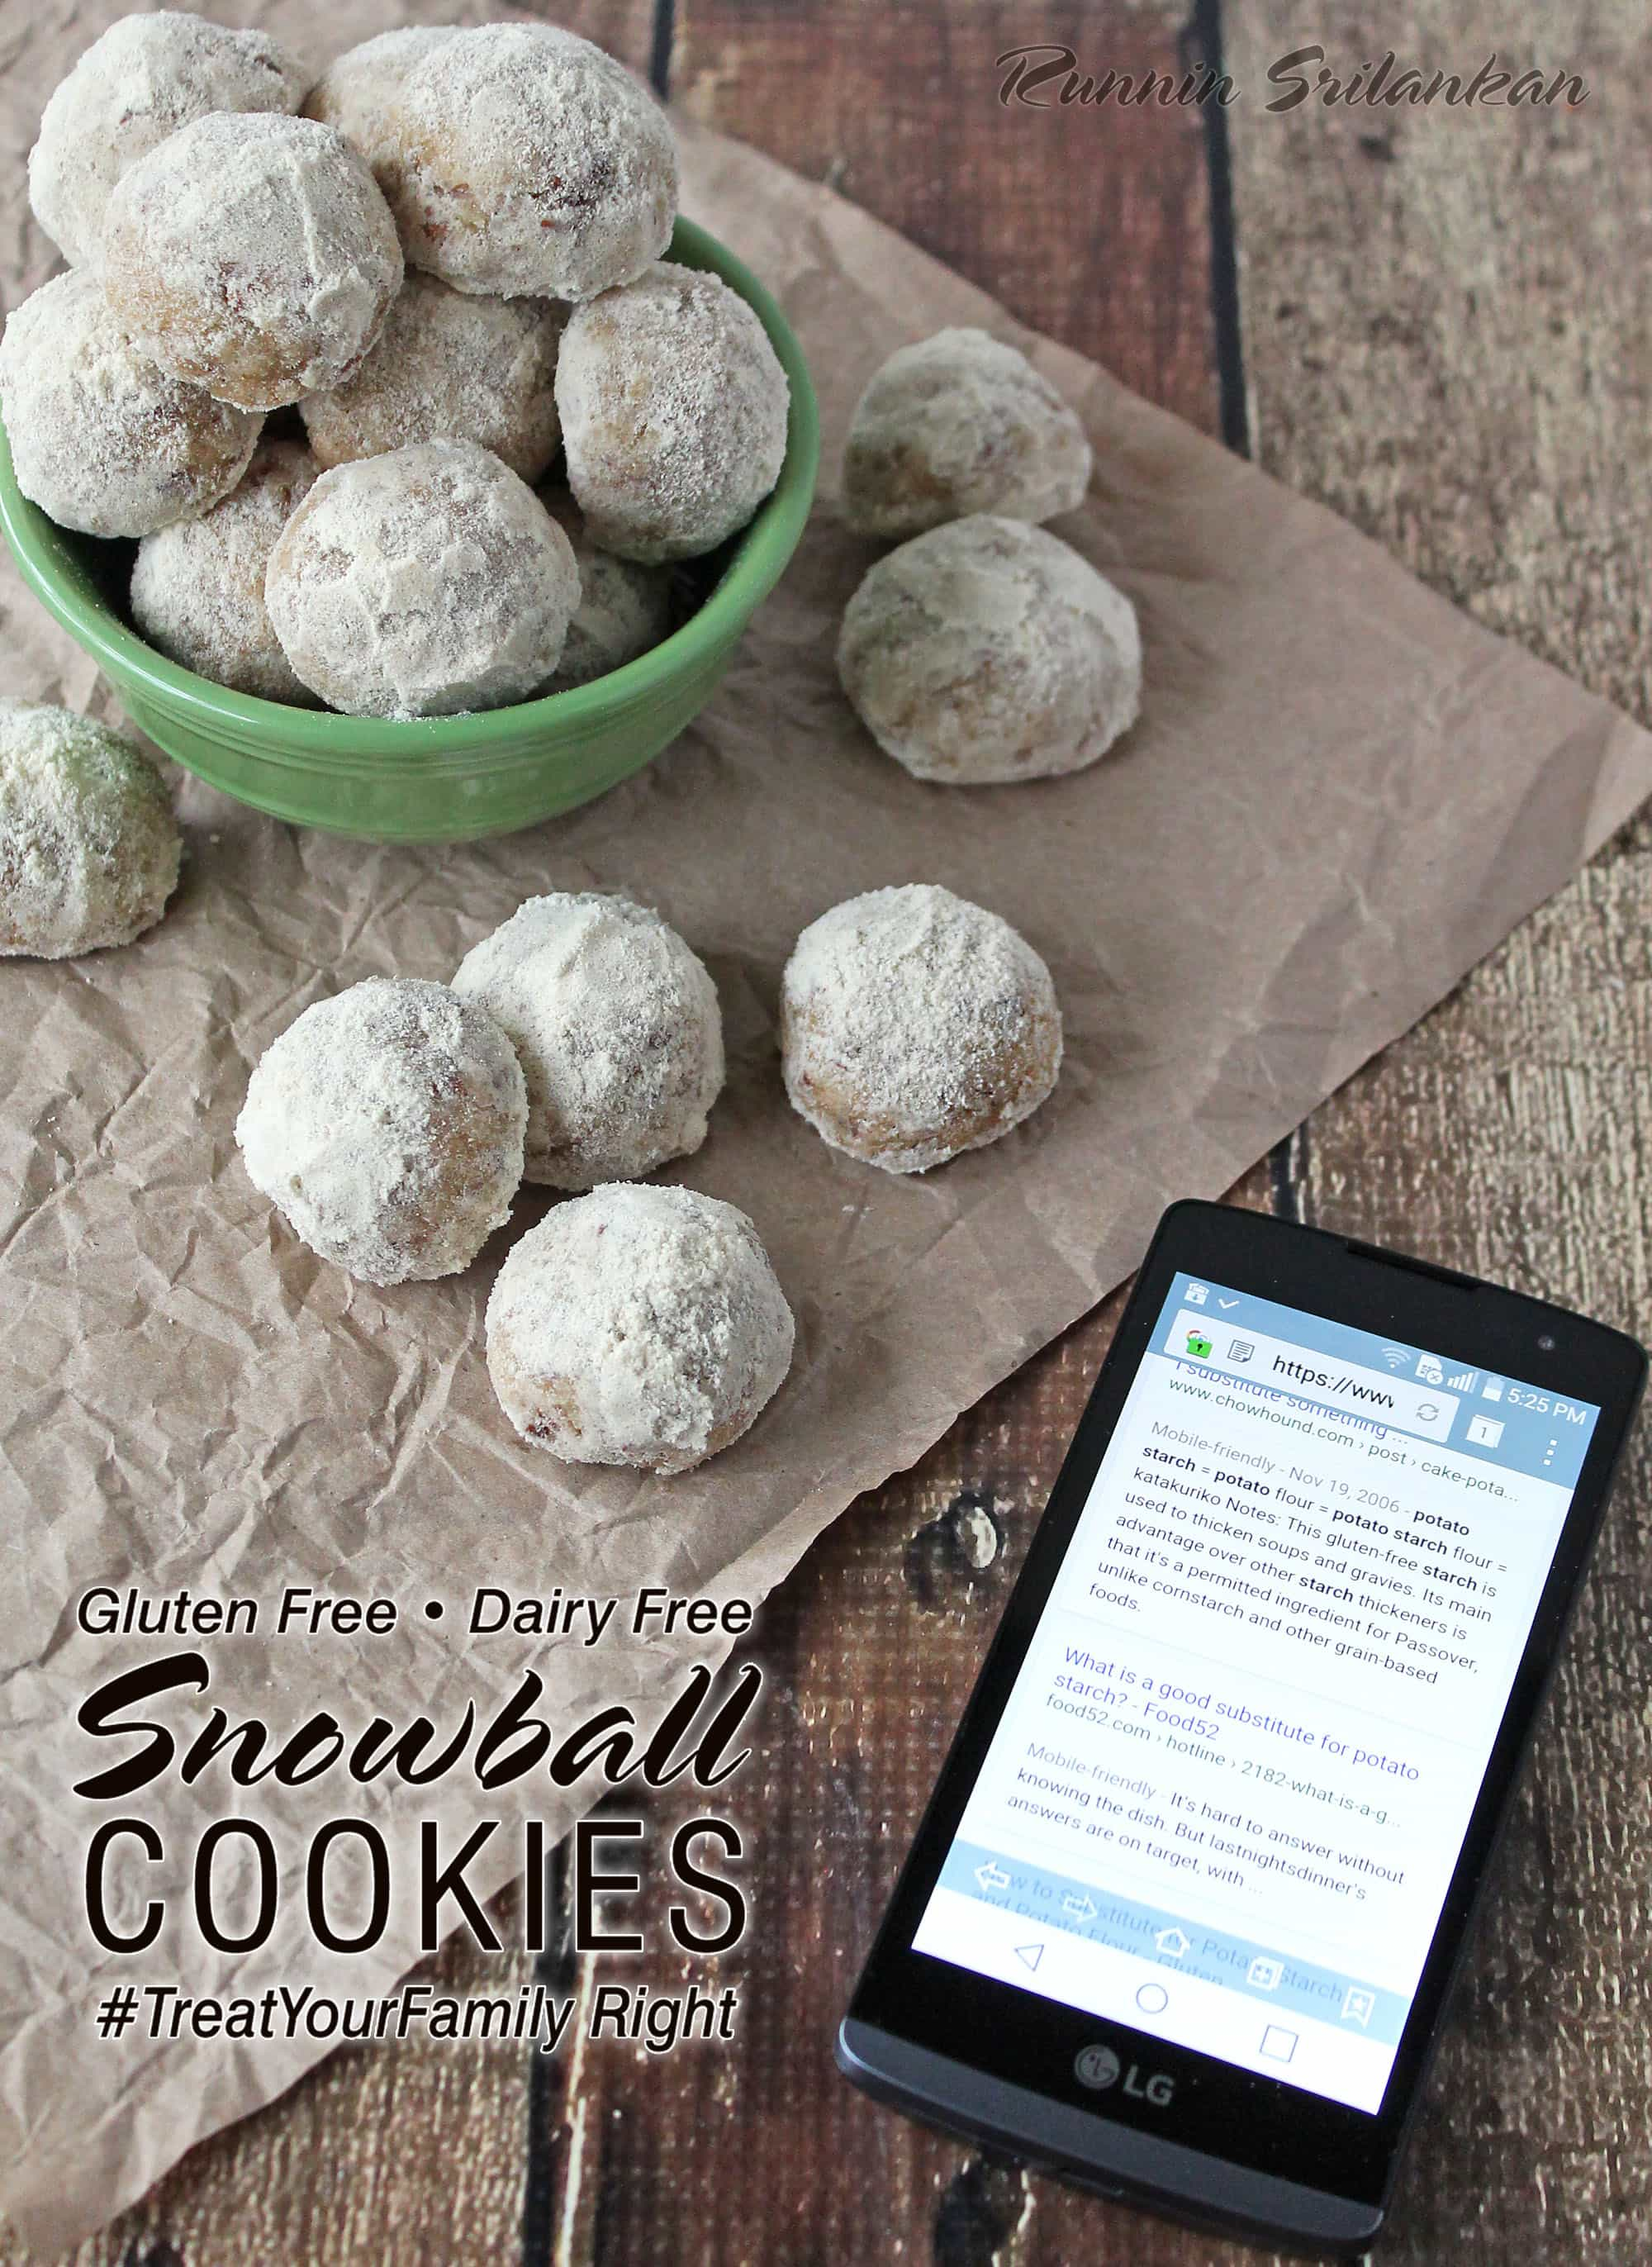 Snowball-Cookies-#TreatYourFamily